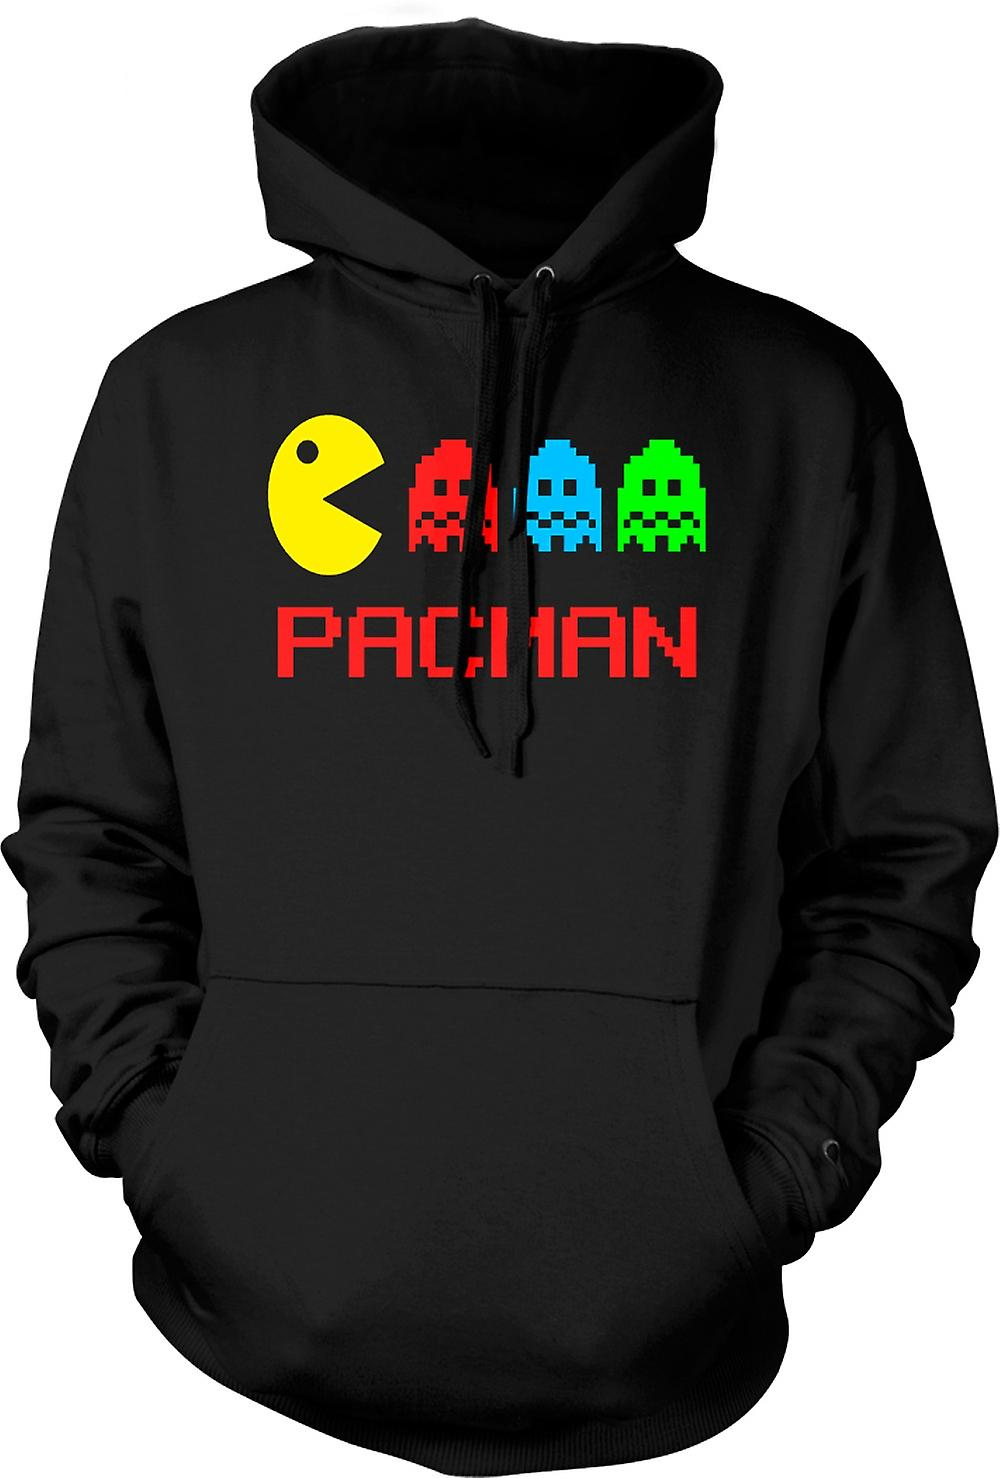 Barn Hoodie - Pacman - Retro - Old School Gamer